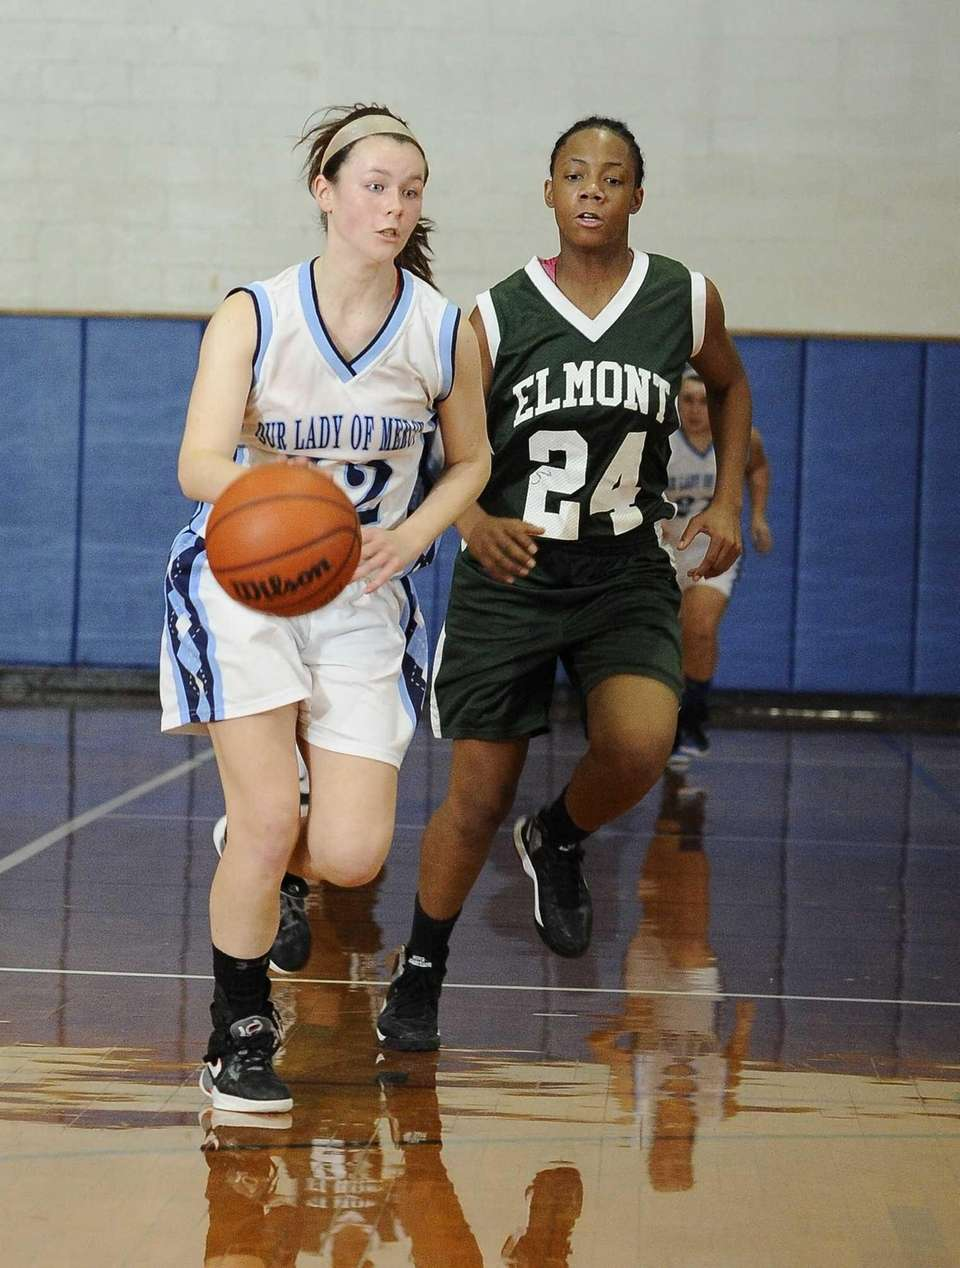 Our Lady of Mercy's Shannon Brady controls the